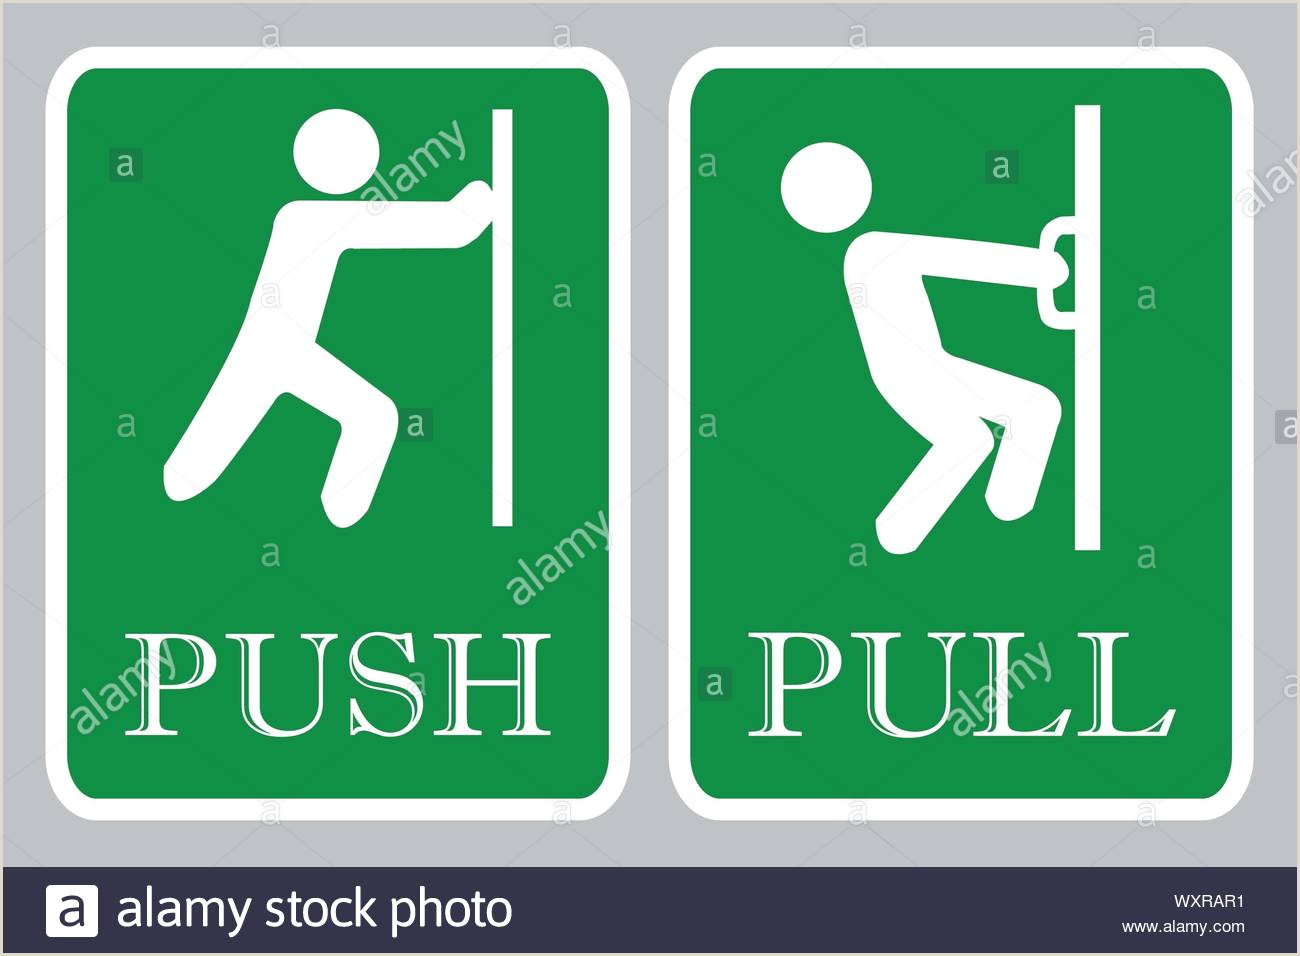 Pull Up Signage Push Pull Door Signs Push Pull Door Signs On Green